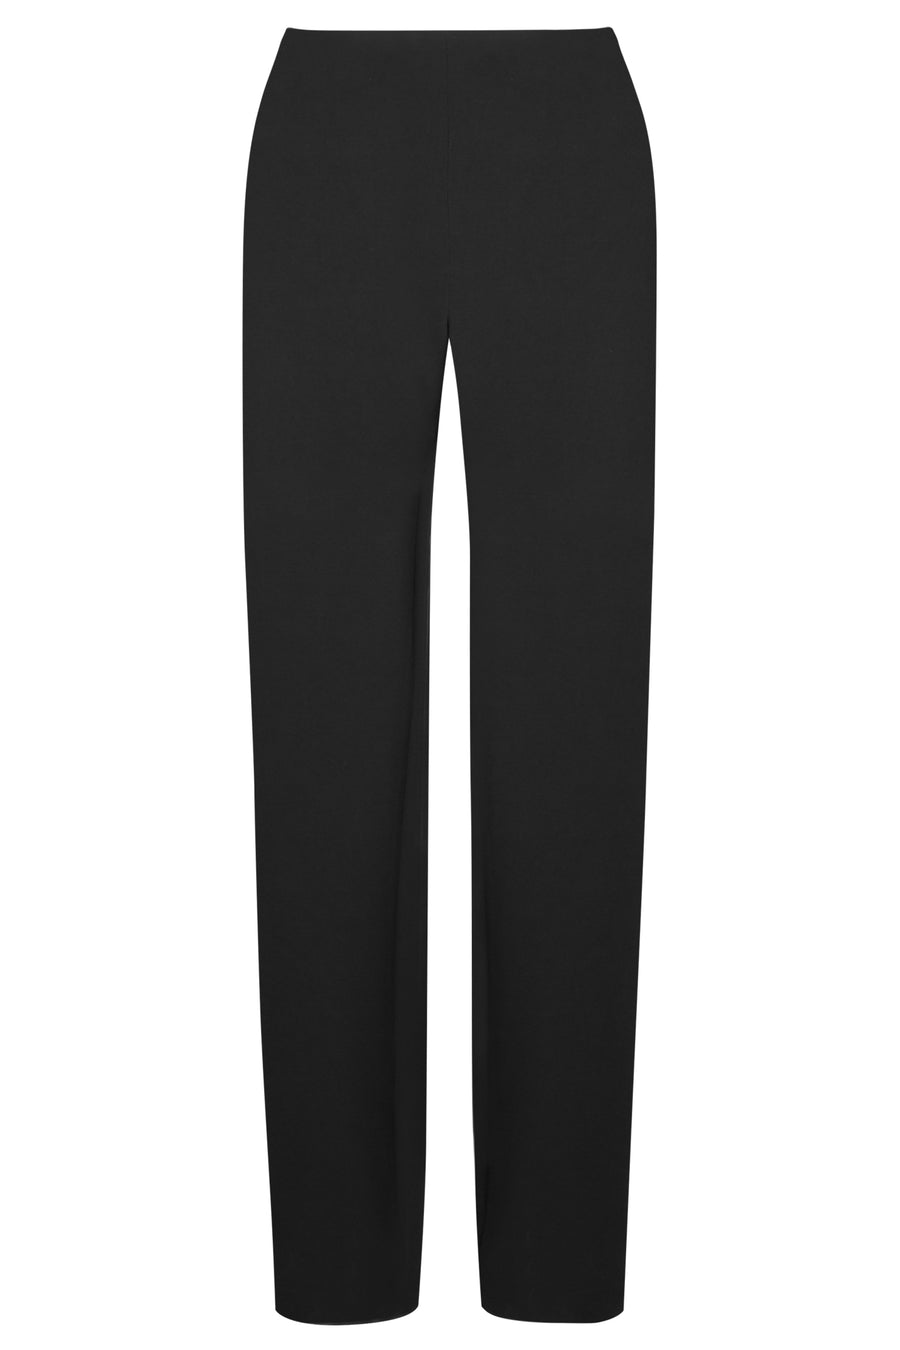 Stirling Black Suiting Trousers